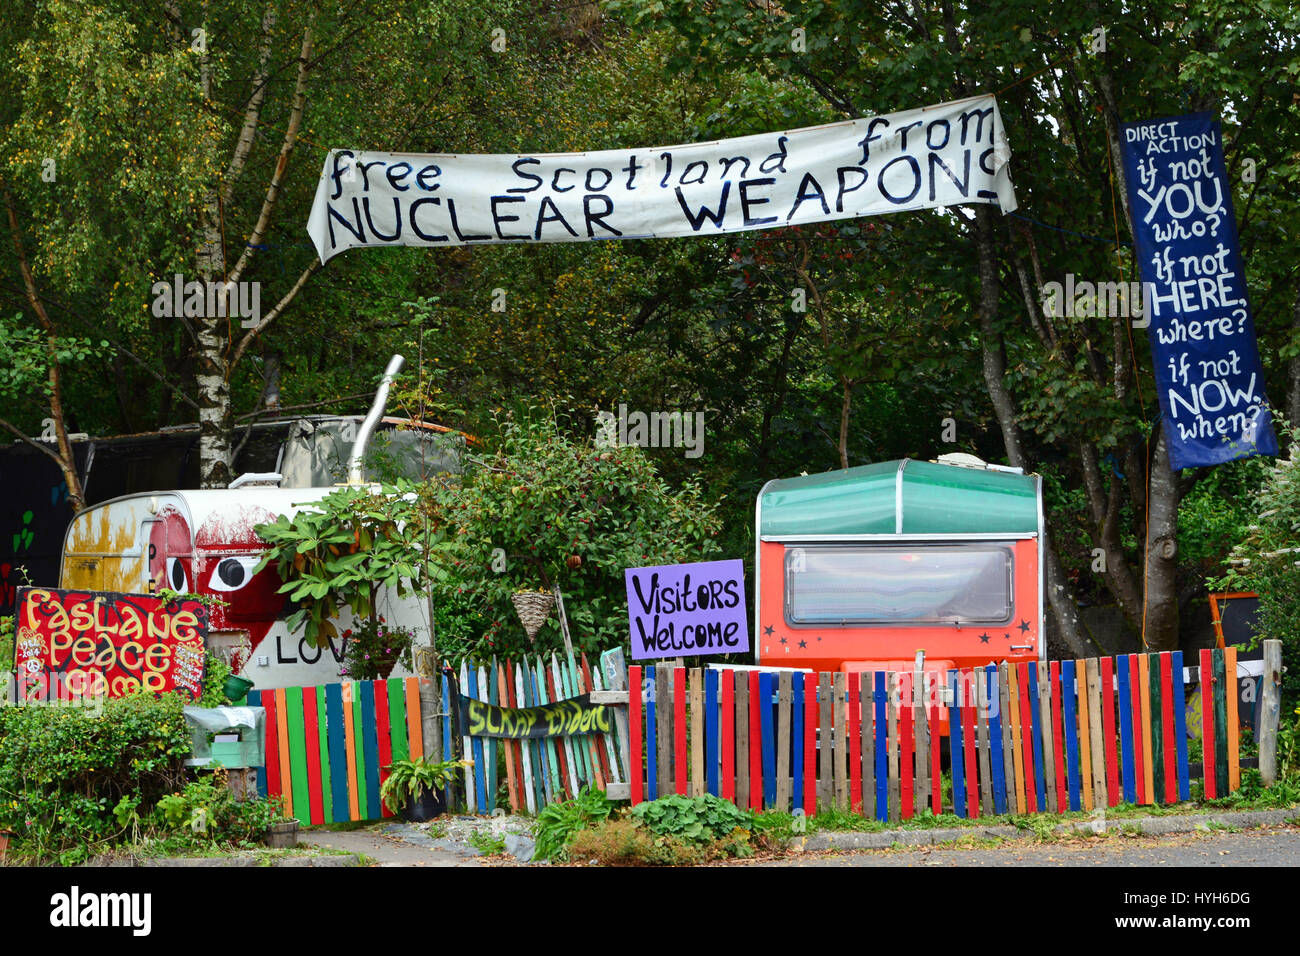 The Faslane peace camp a mile from one of the main gates of the Faslane nuclear submarine base - Stock Image